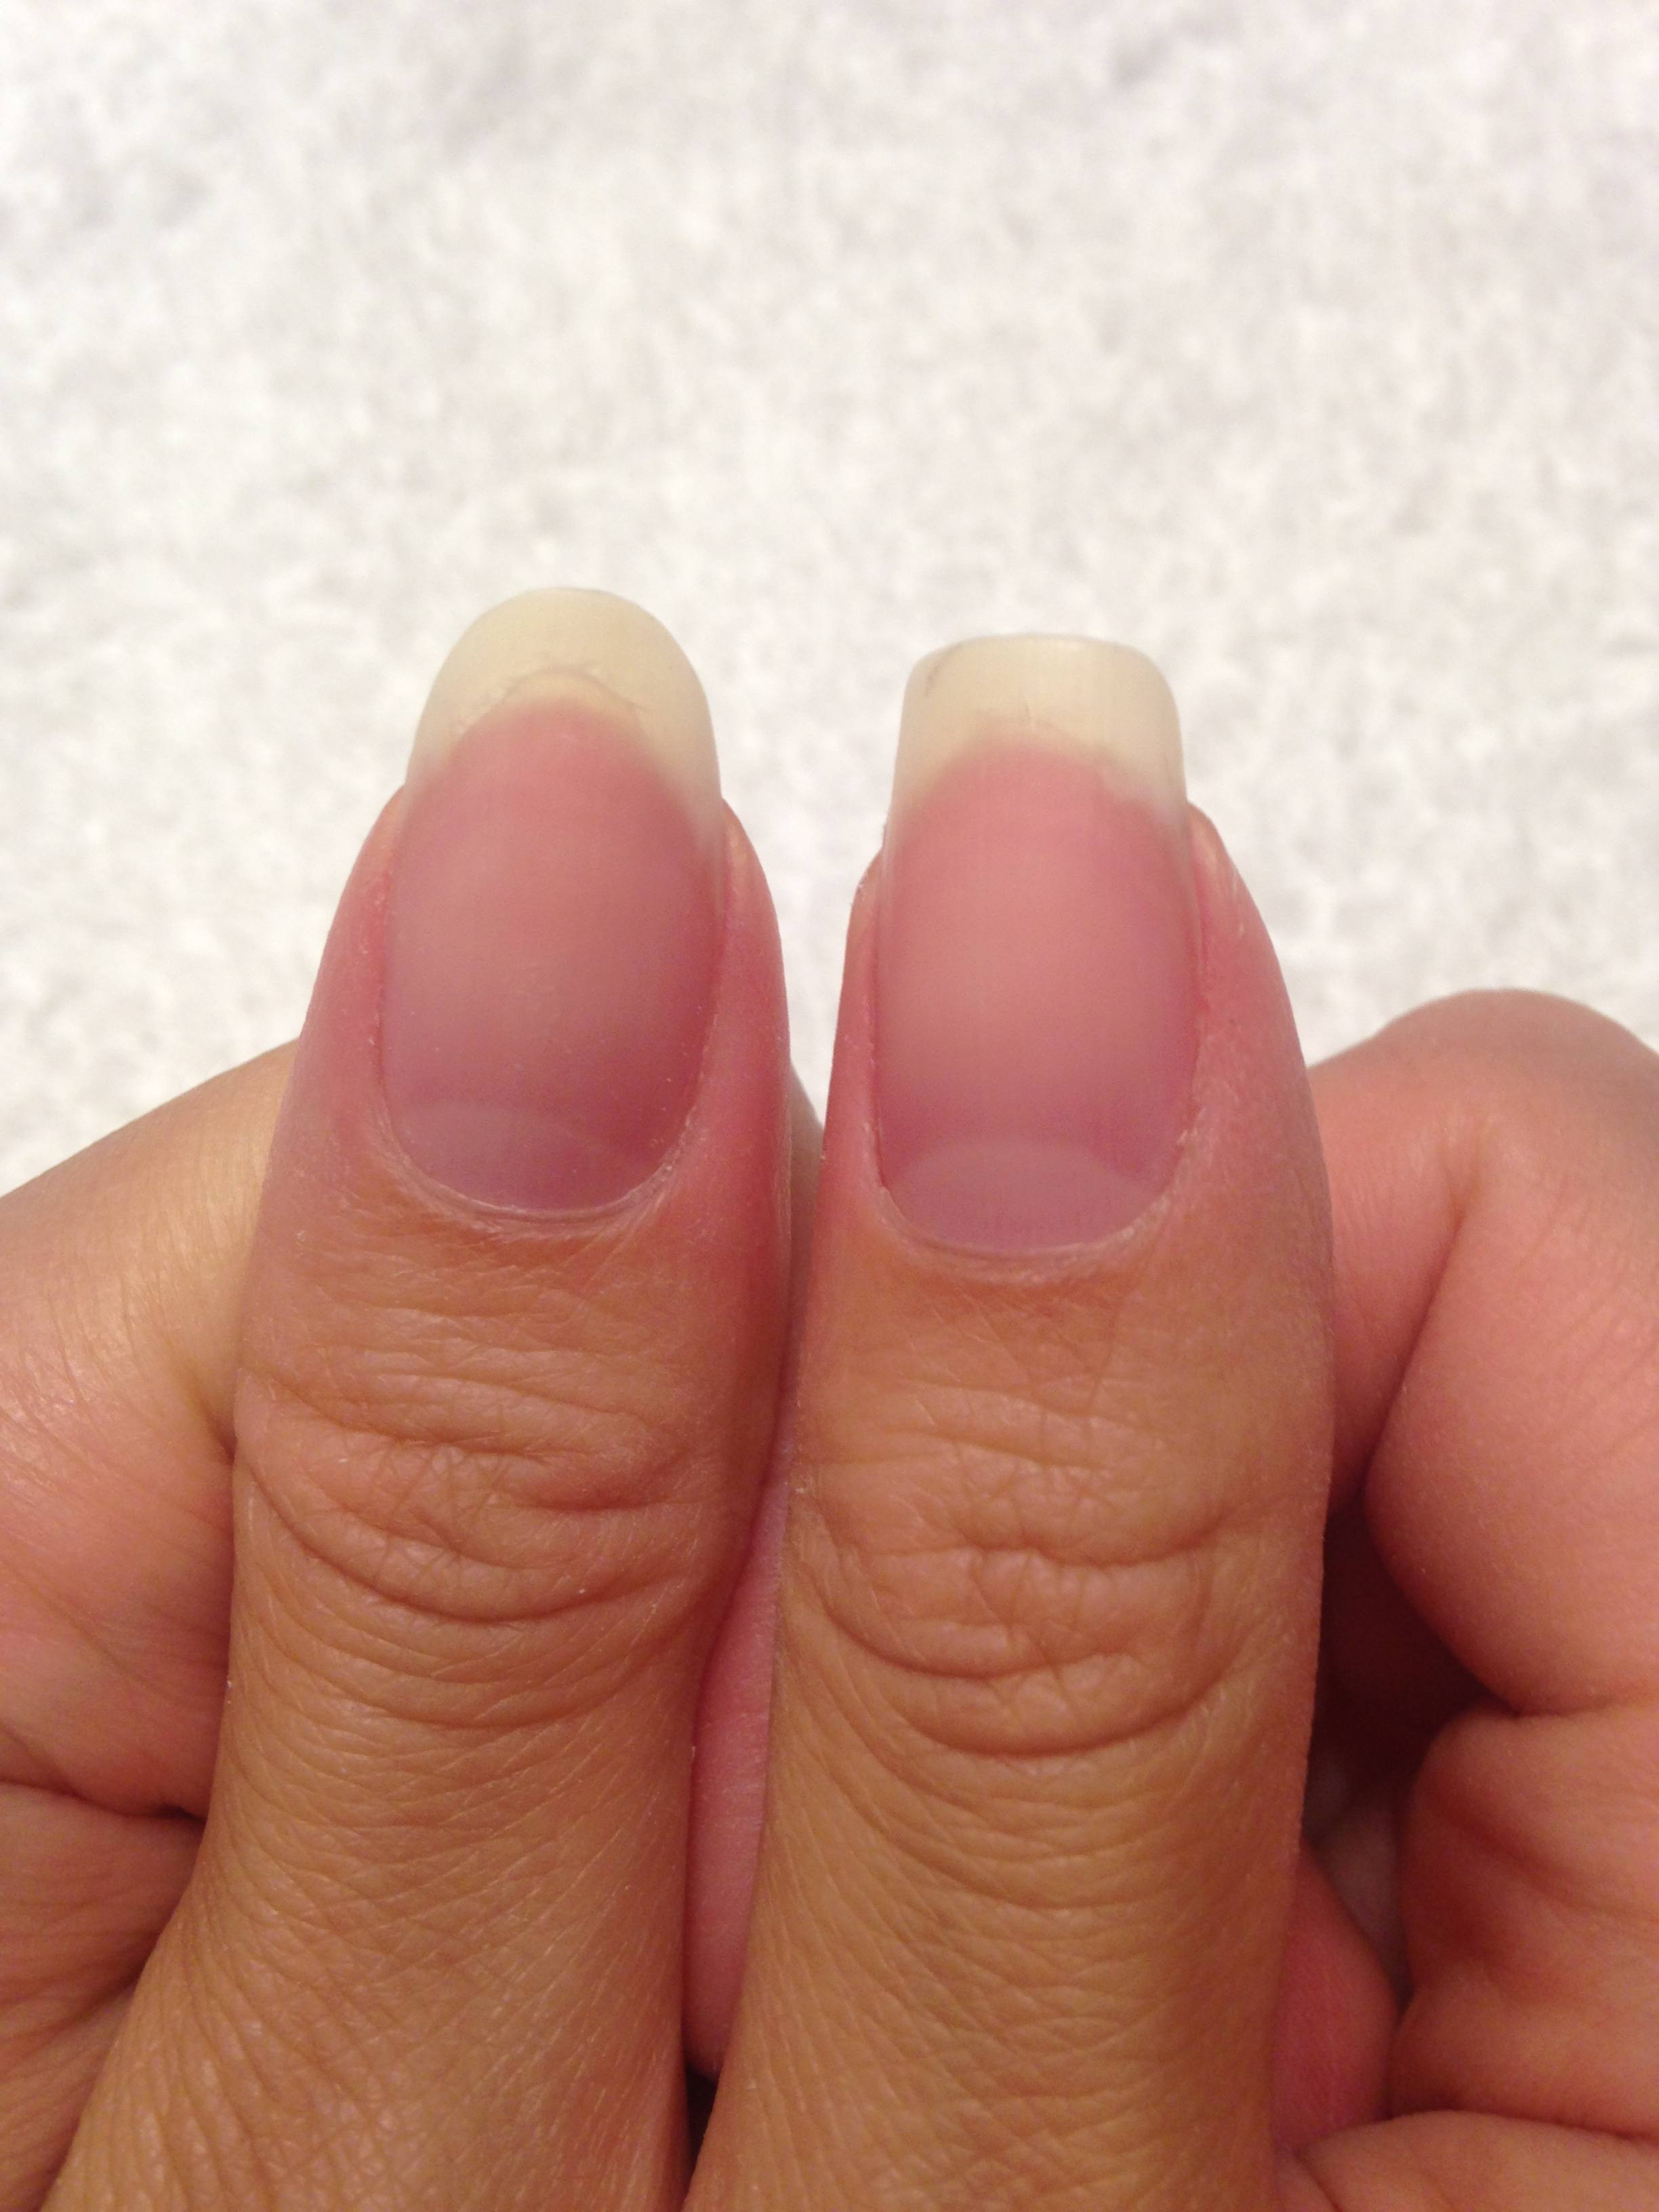 Week 3 - The Perfect Nail Shape | Sunday Beauty Boutique